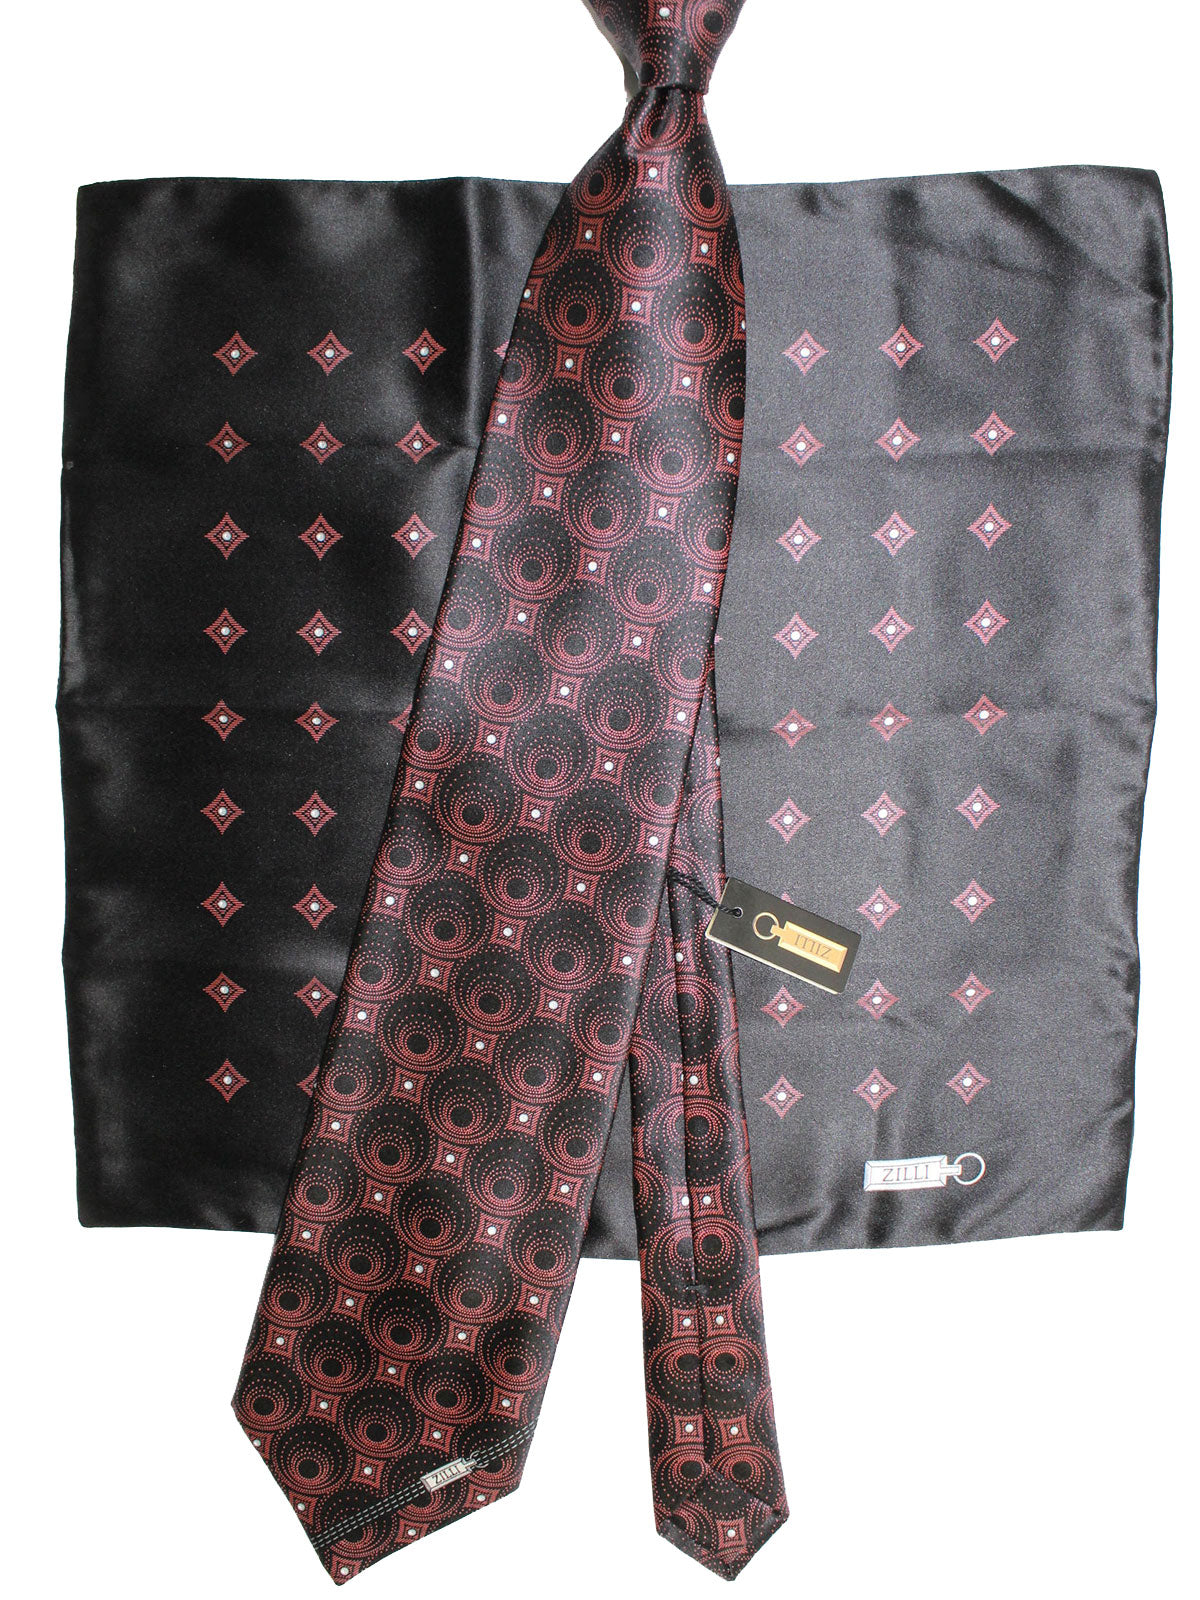 Zilli Silk Tie & Pocket Square Set Brown Black Geometric